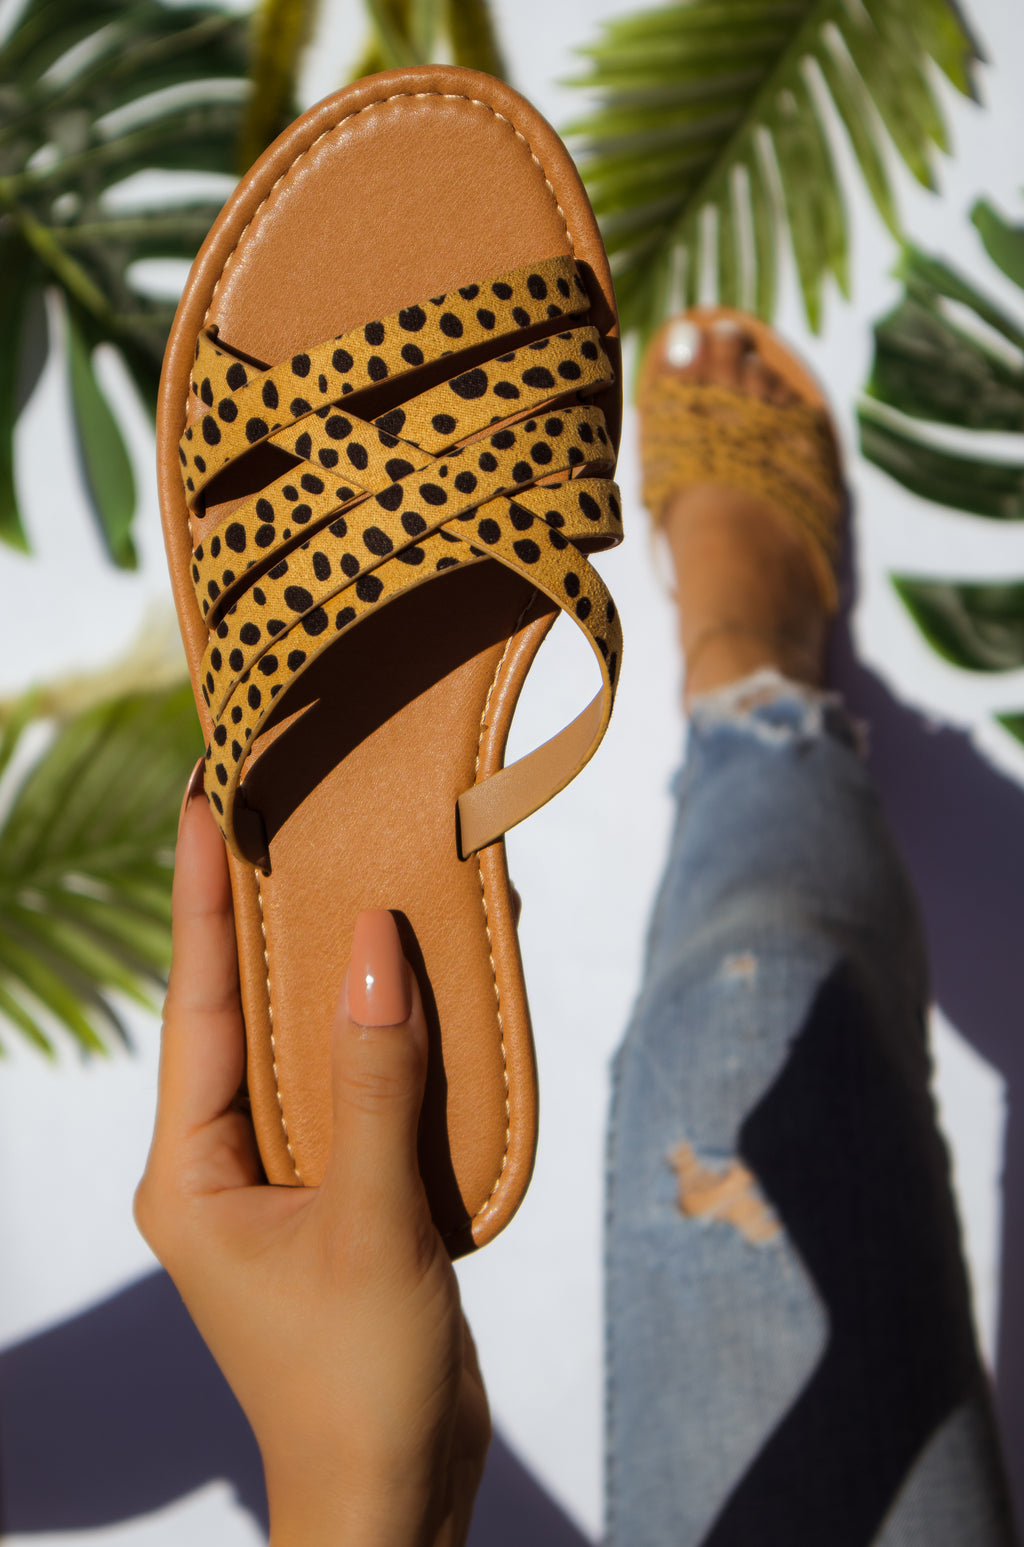 Summer Nights - Cheetah Sandals